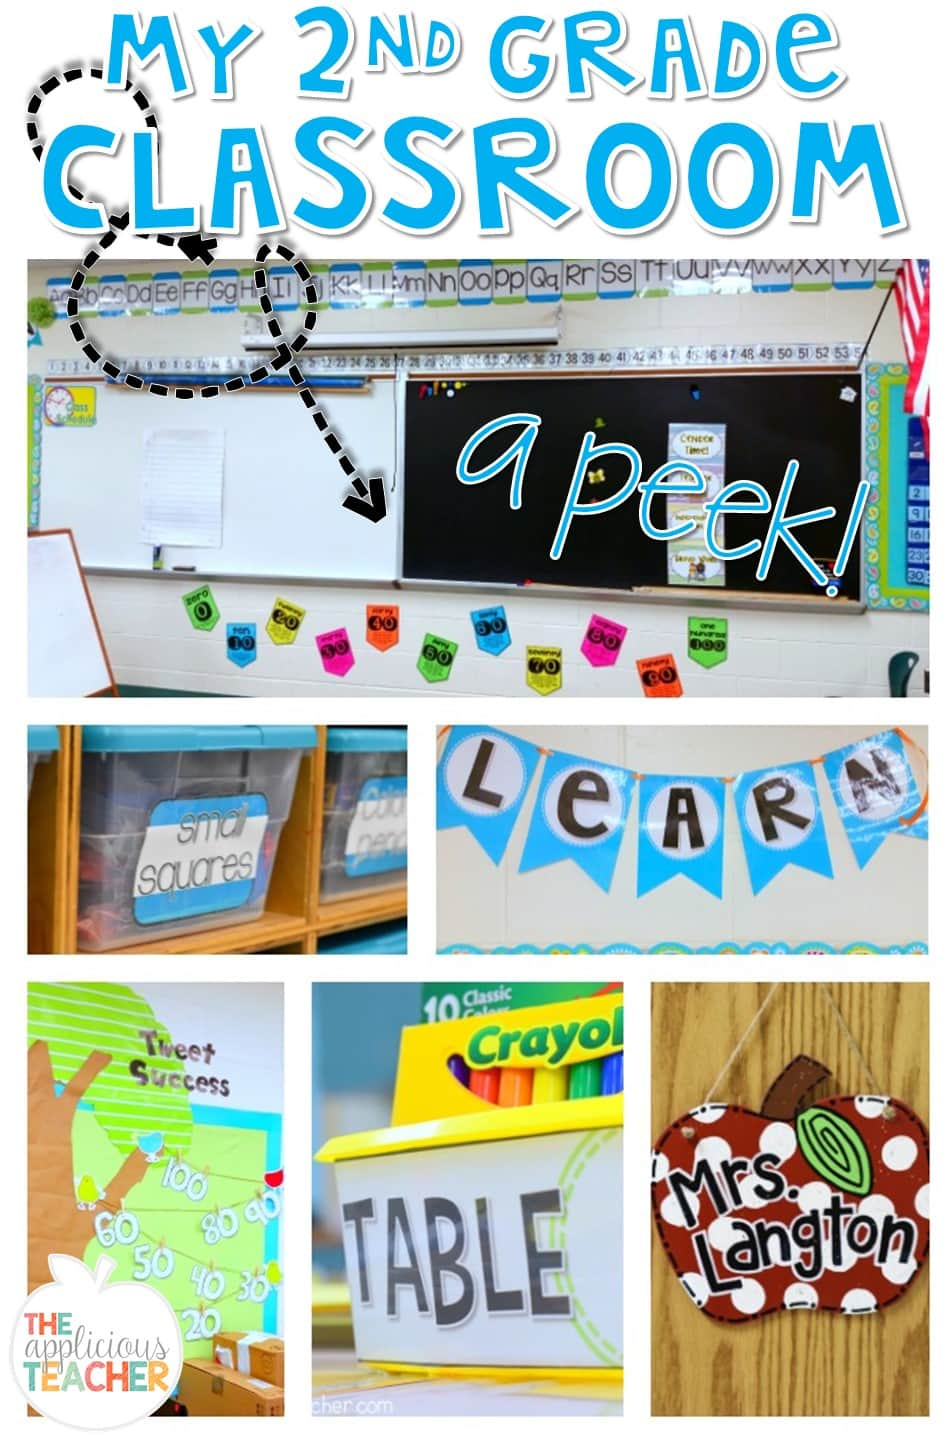 Take a peek at my second grade classroom TheAppliciousTeacher.com #classroomdecor #classroomsetup